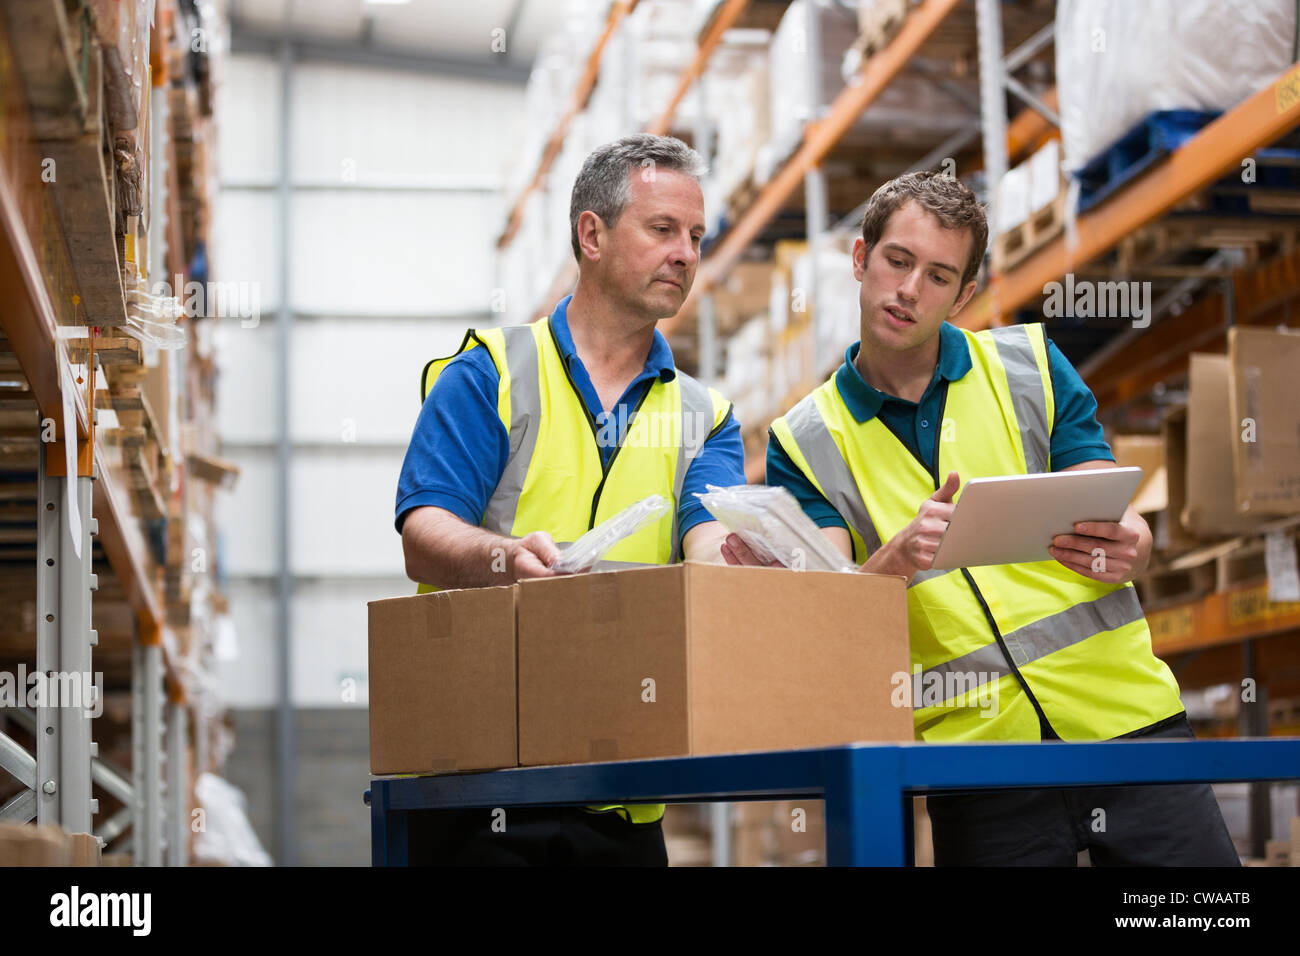 Two men checking stock in warehouse - Stock Image